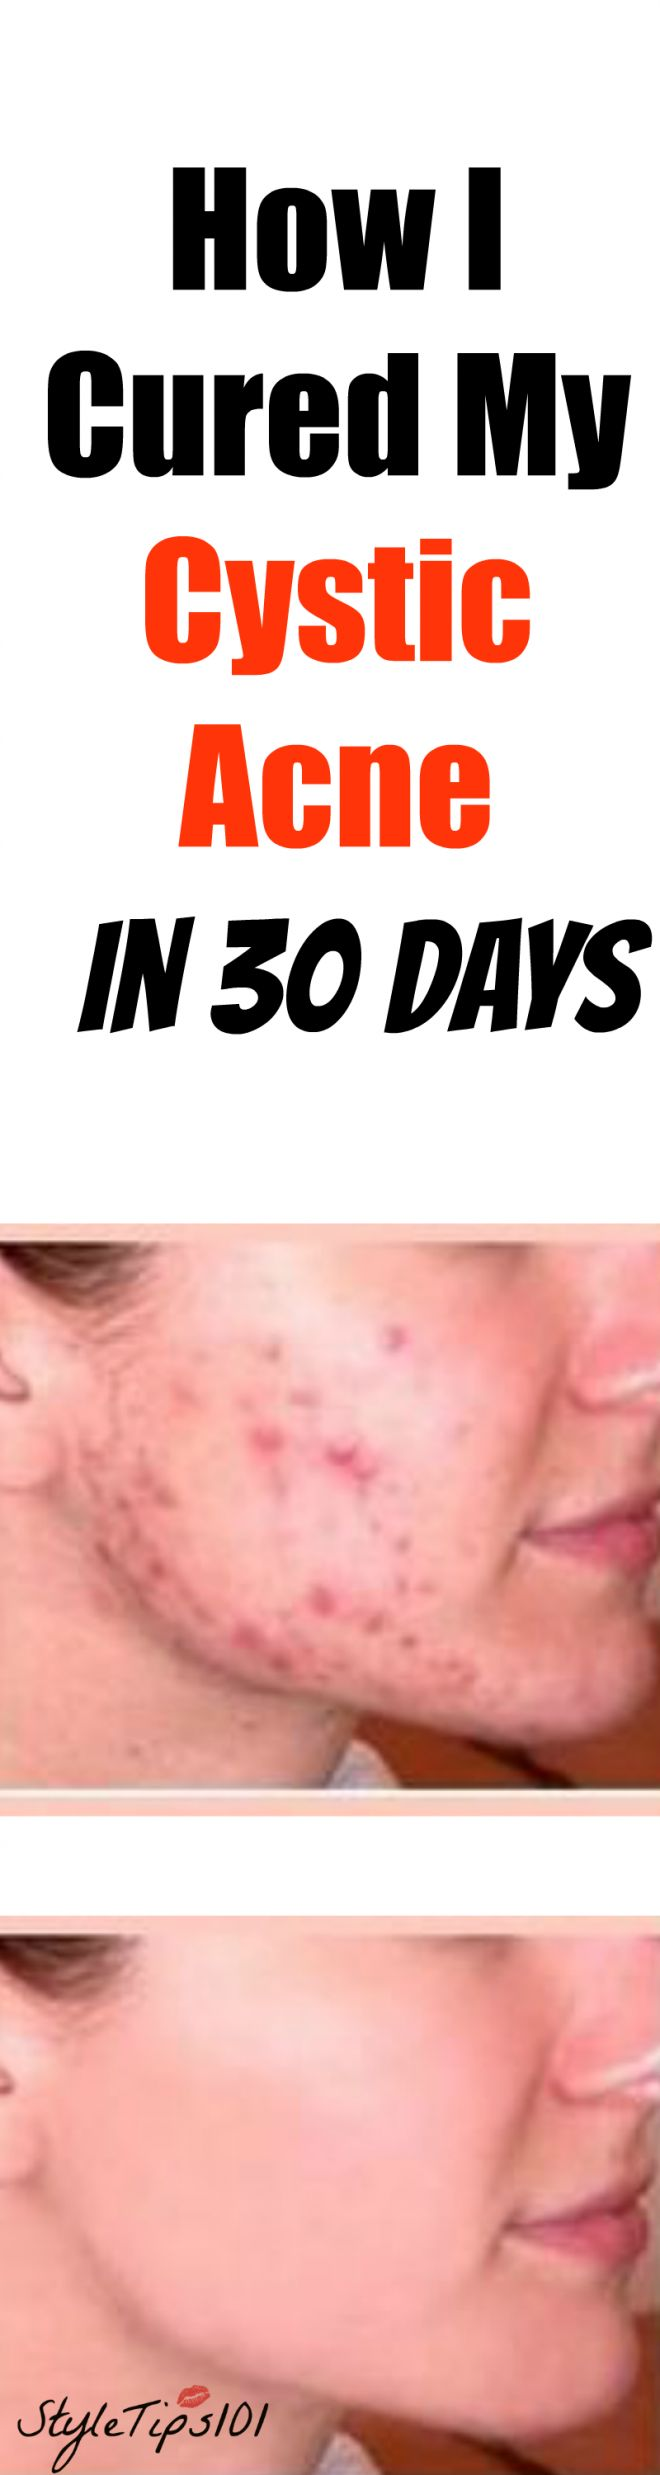 antibiotics to treat cystic acne